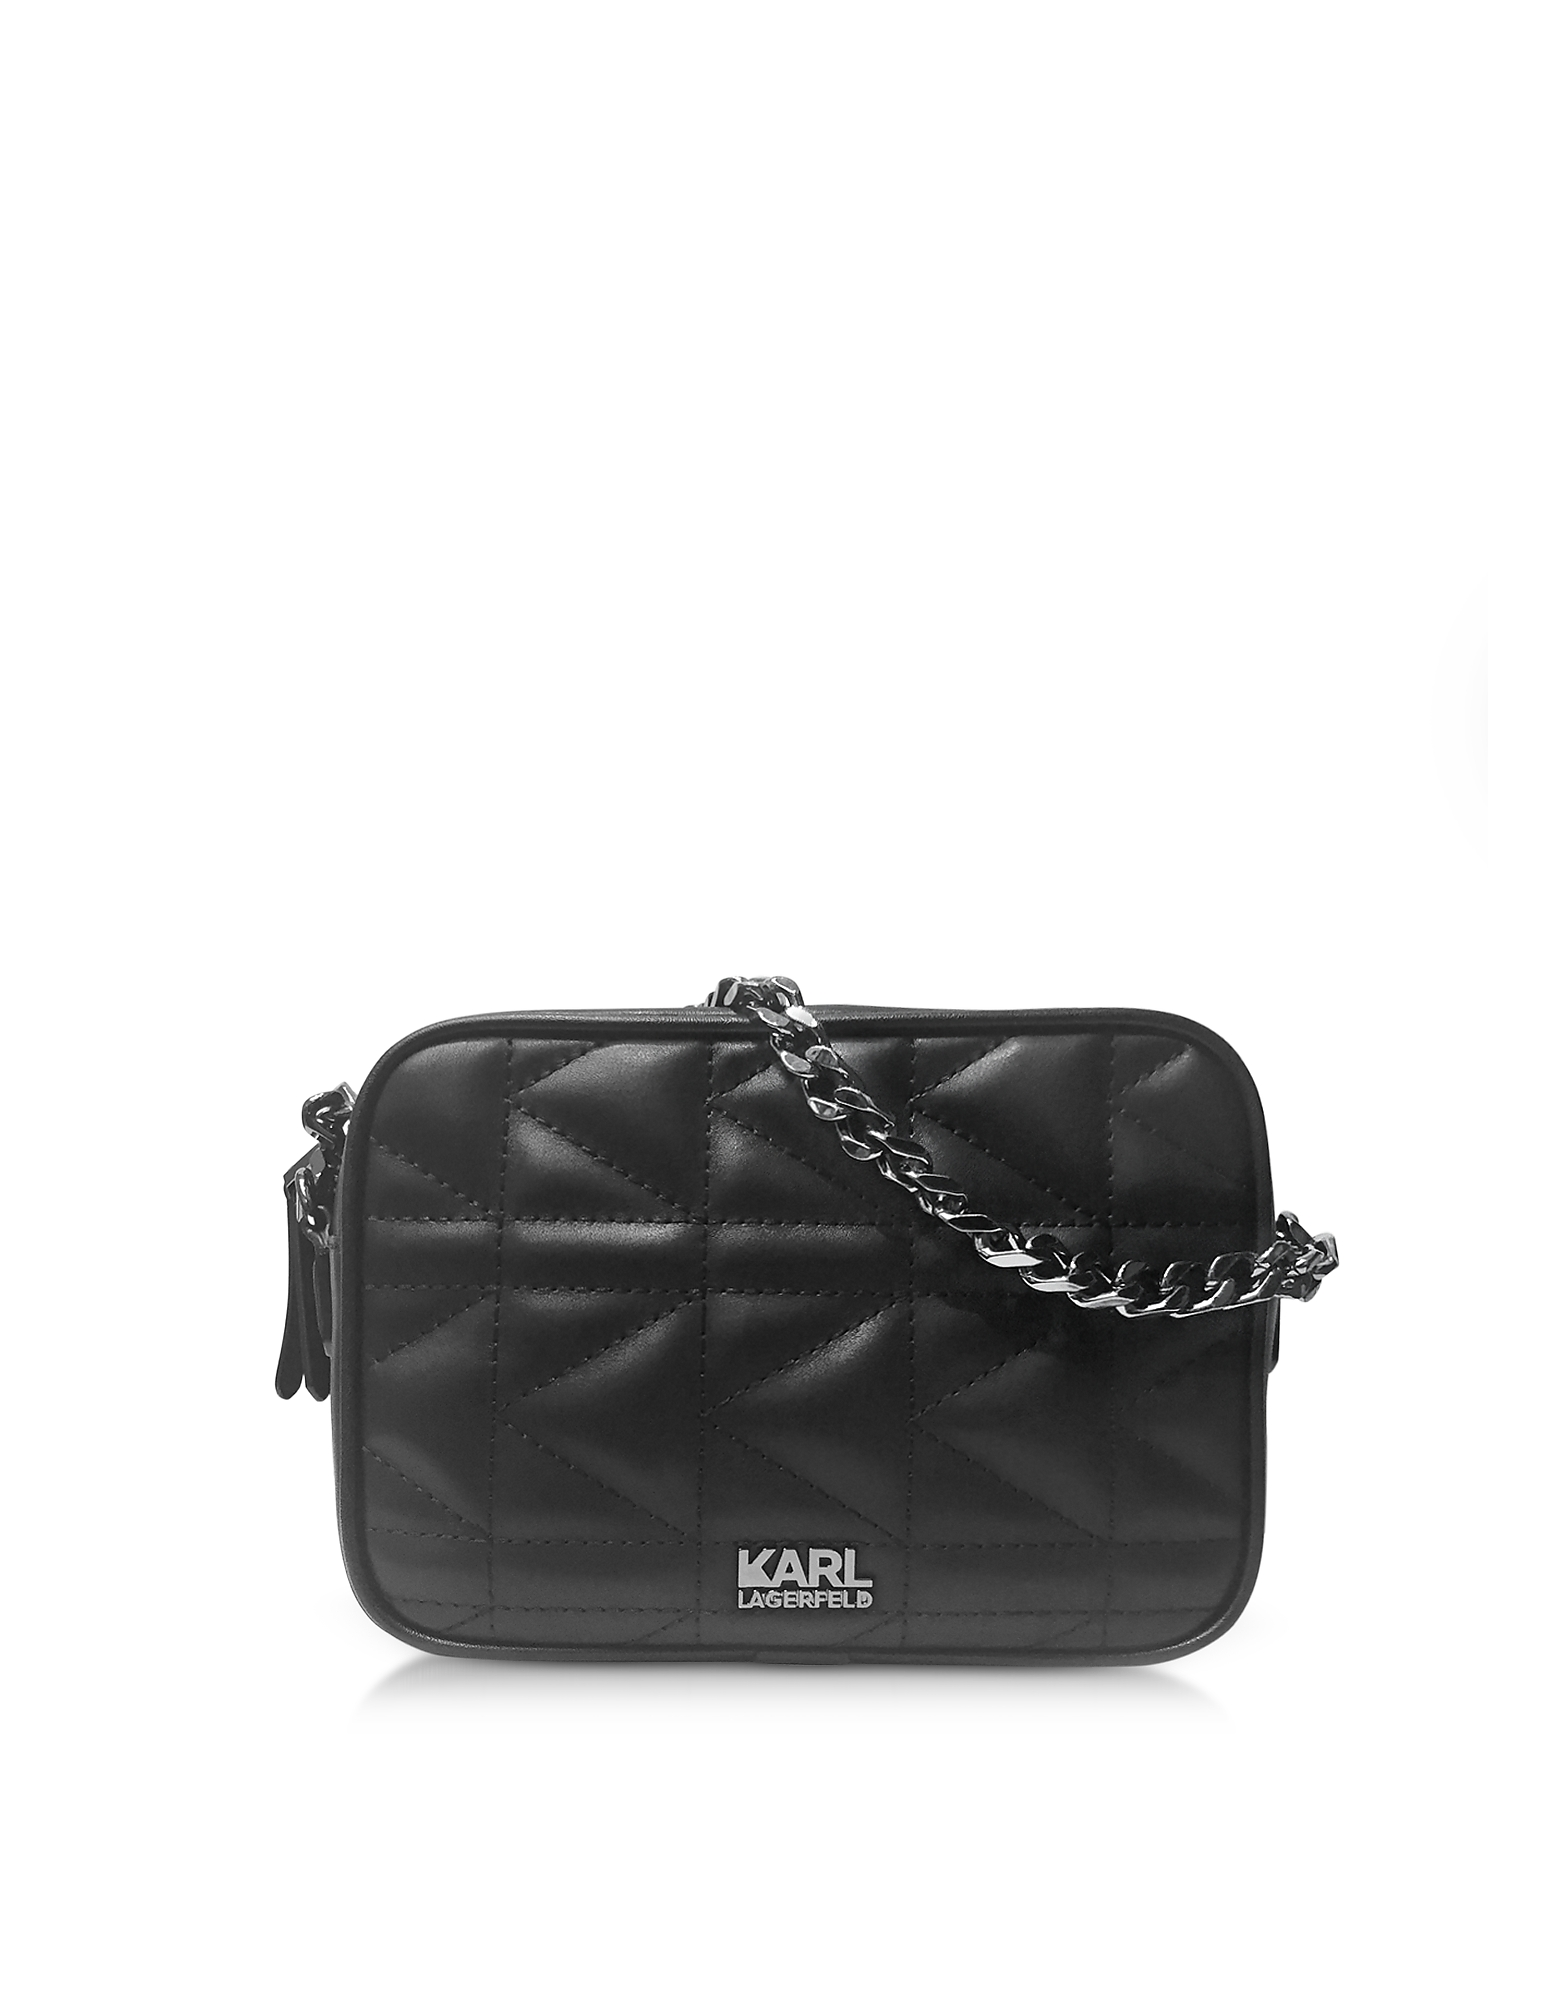 Karl Lagerfeld Handbags, K/Kuilted Black Leather Crossbody Bag